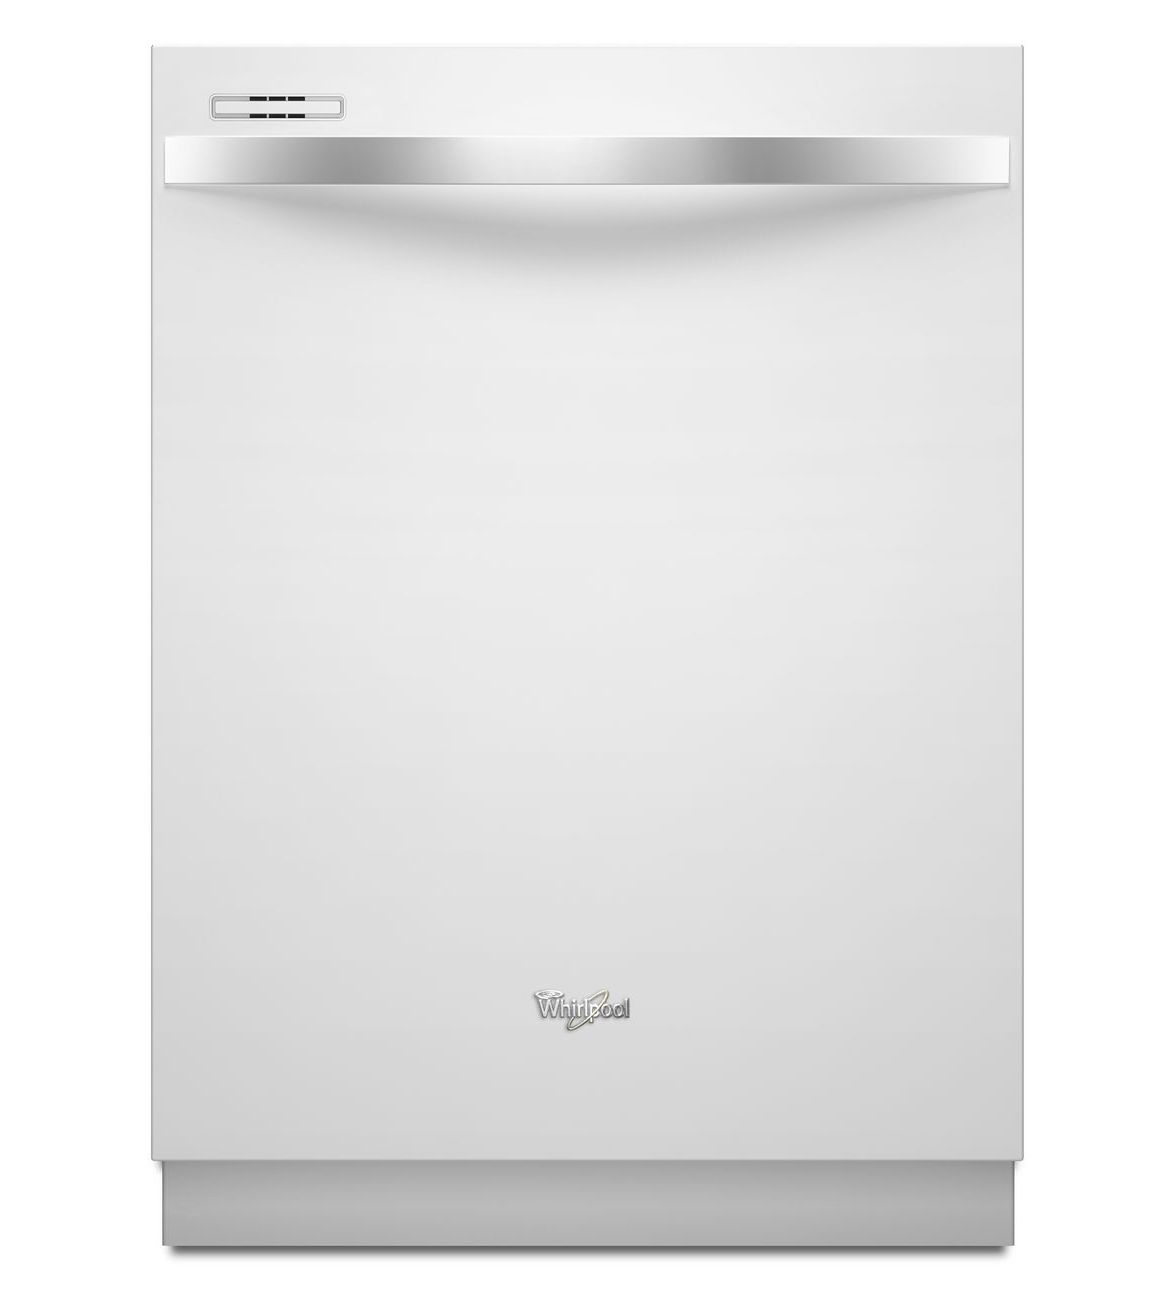 Whirlpool white ice single wall oven - Whirlpool Ice Collection Whirlpool Gold Series Dishwasher With Sensor Cycle